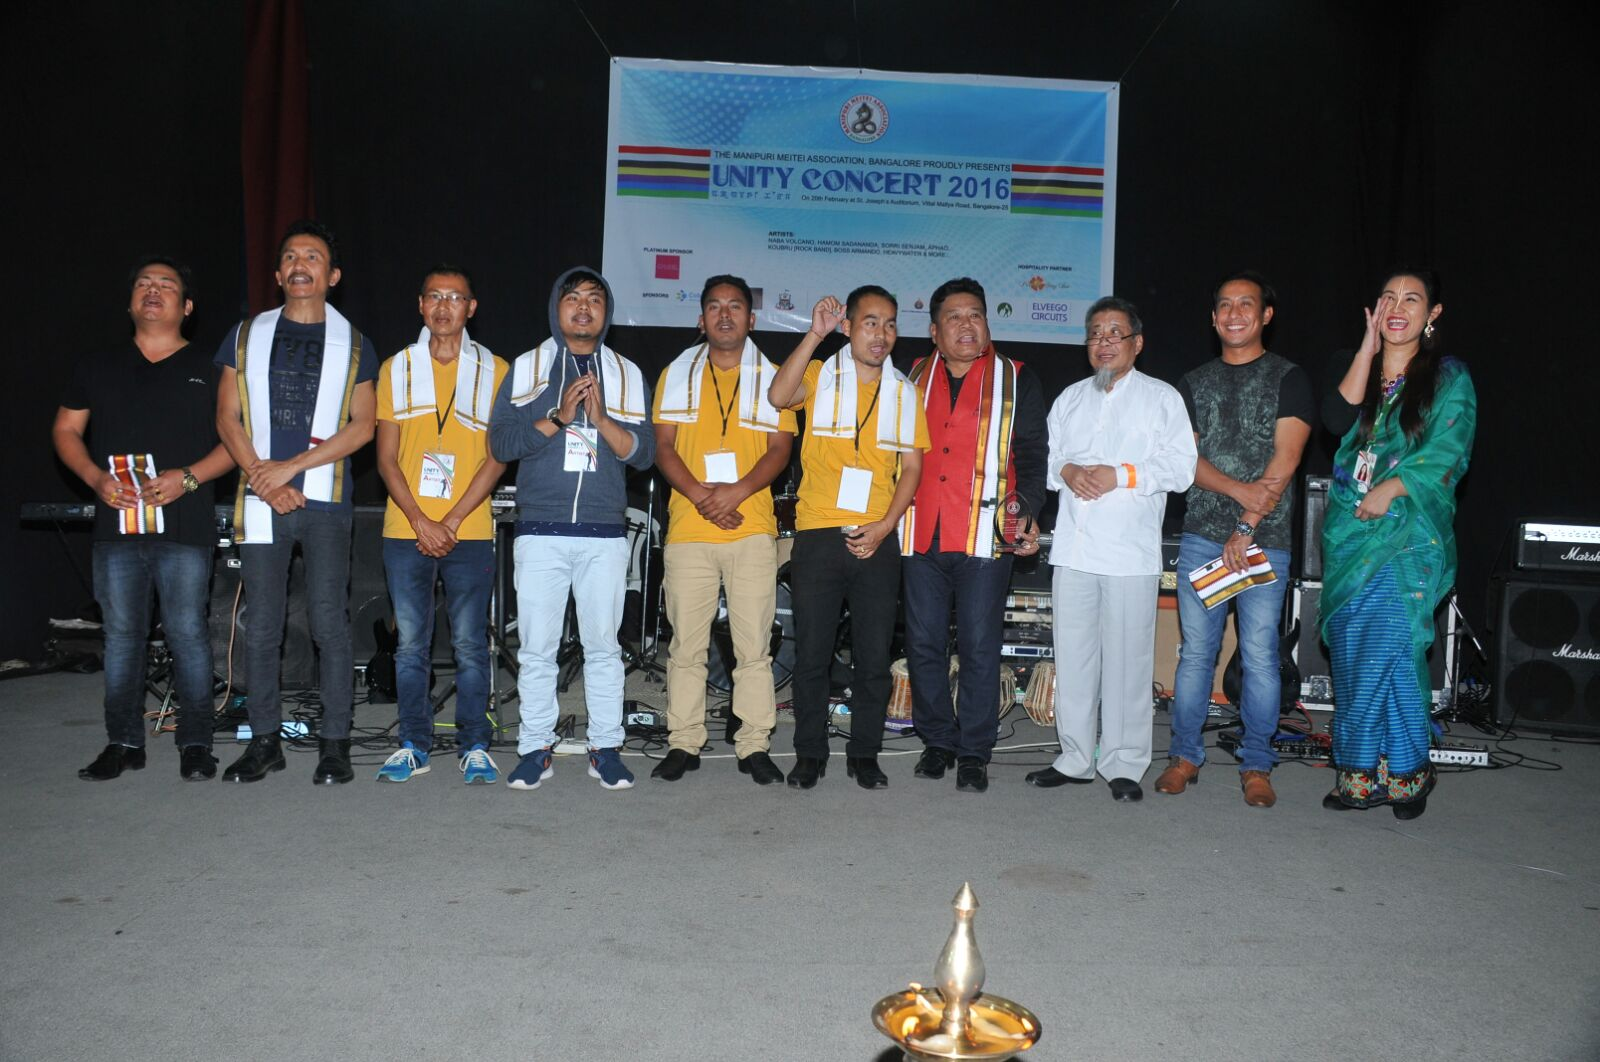 Felicitation of Artist and Orche